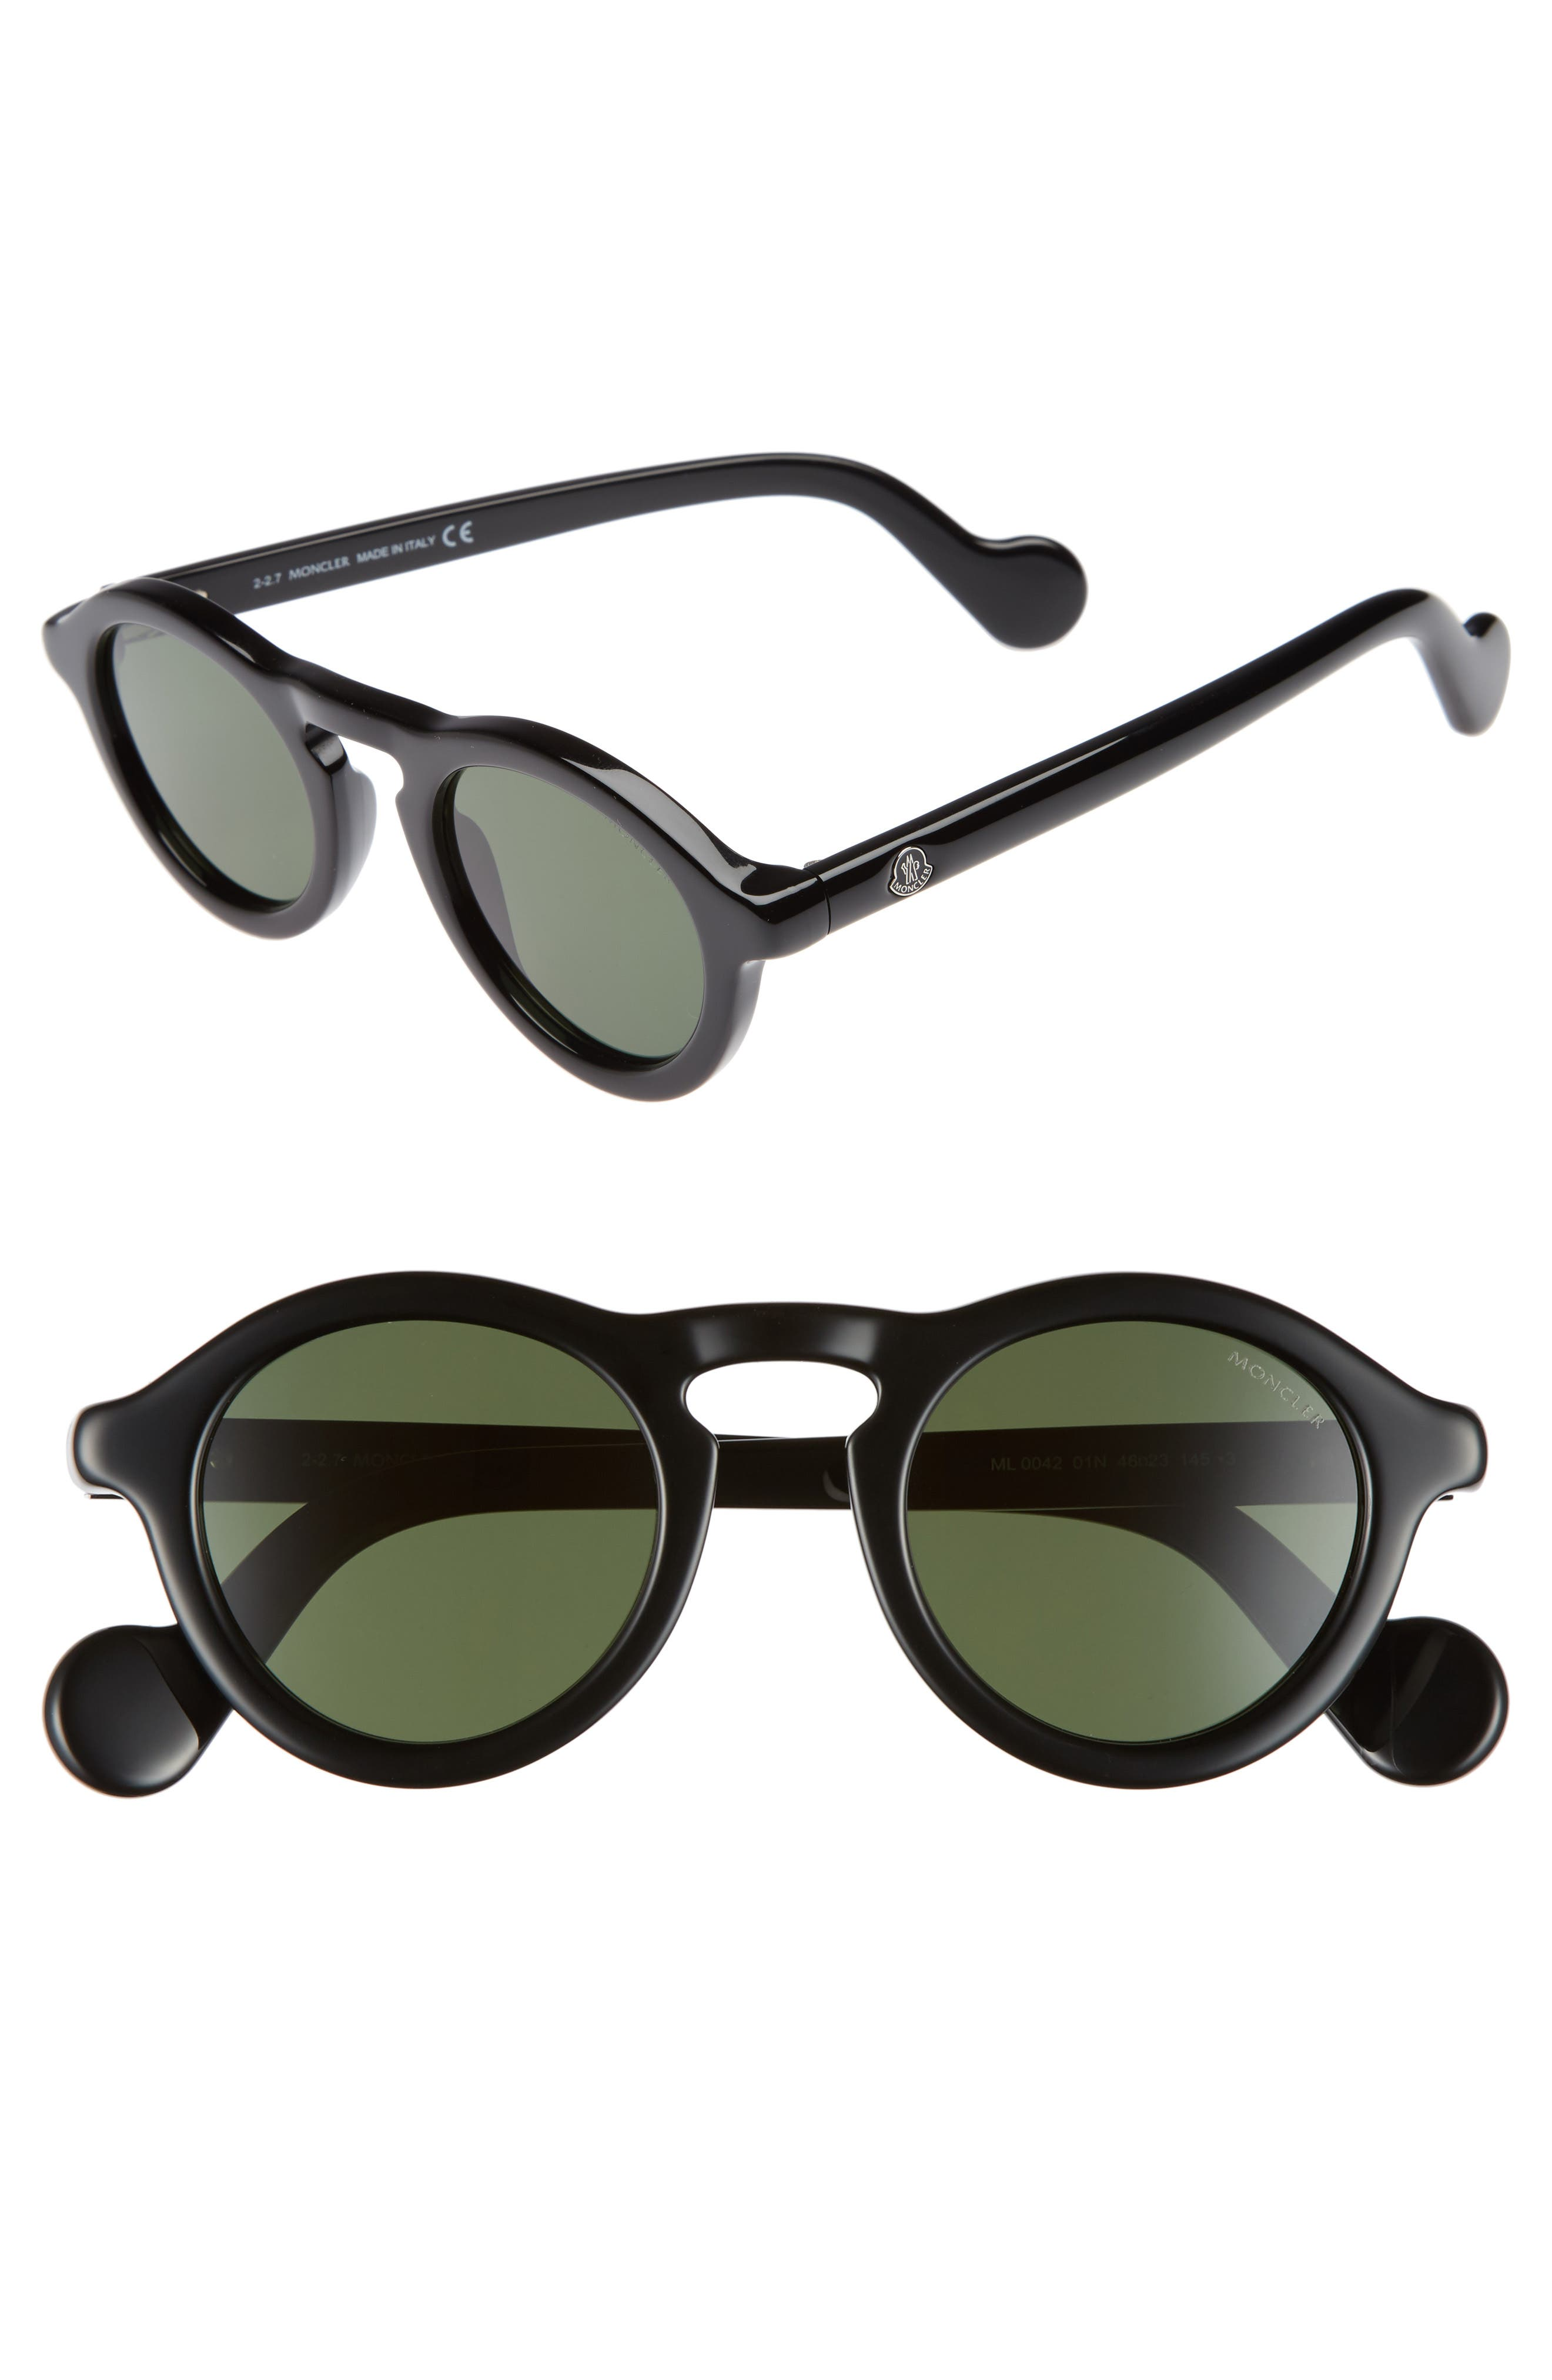 46mm Round Sunglasses,                         Main,                         color, Shiny Black/ Green